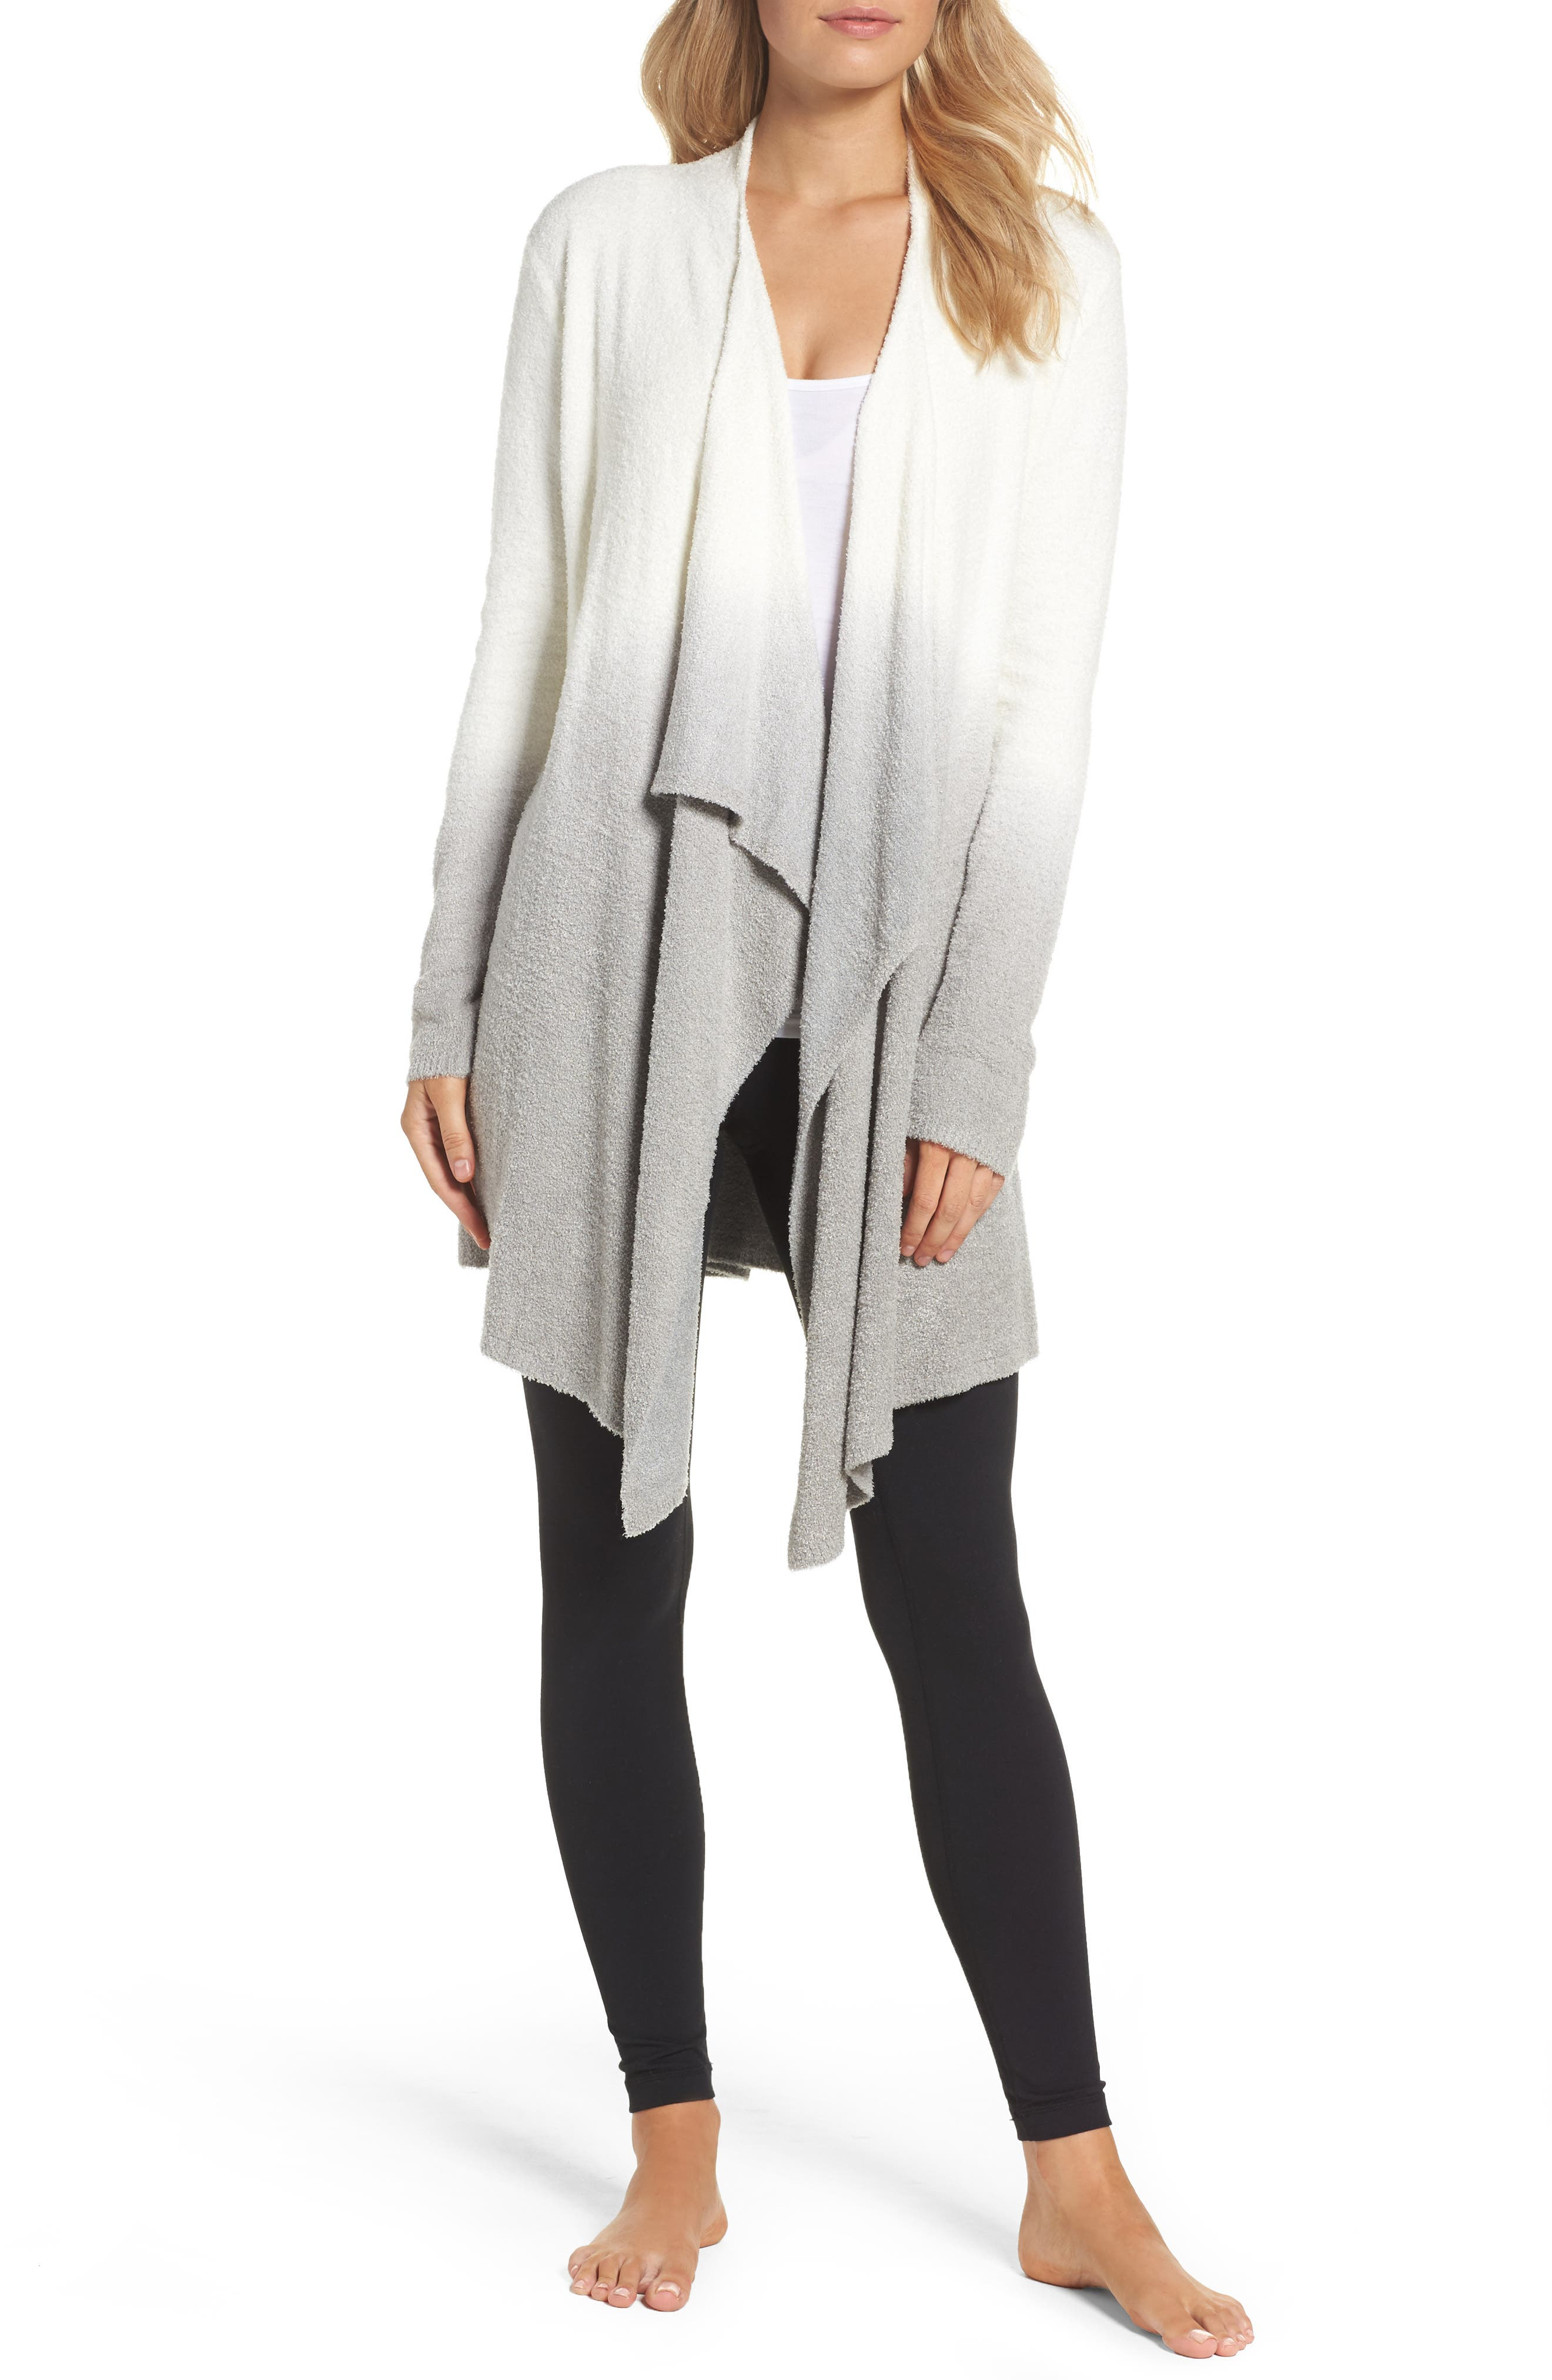 CozyChic Lite<sup>®</sup> Calypso Wrap Cardigan,                             Main thumbnail 1, color,                             White/ Pewter Ombre